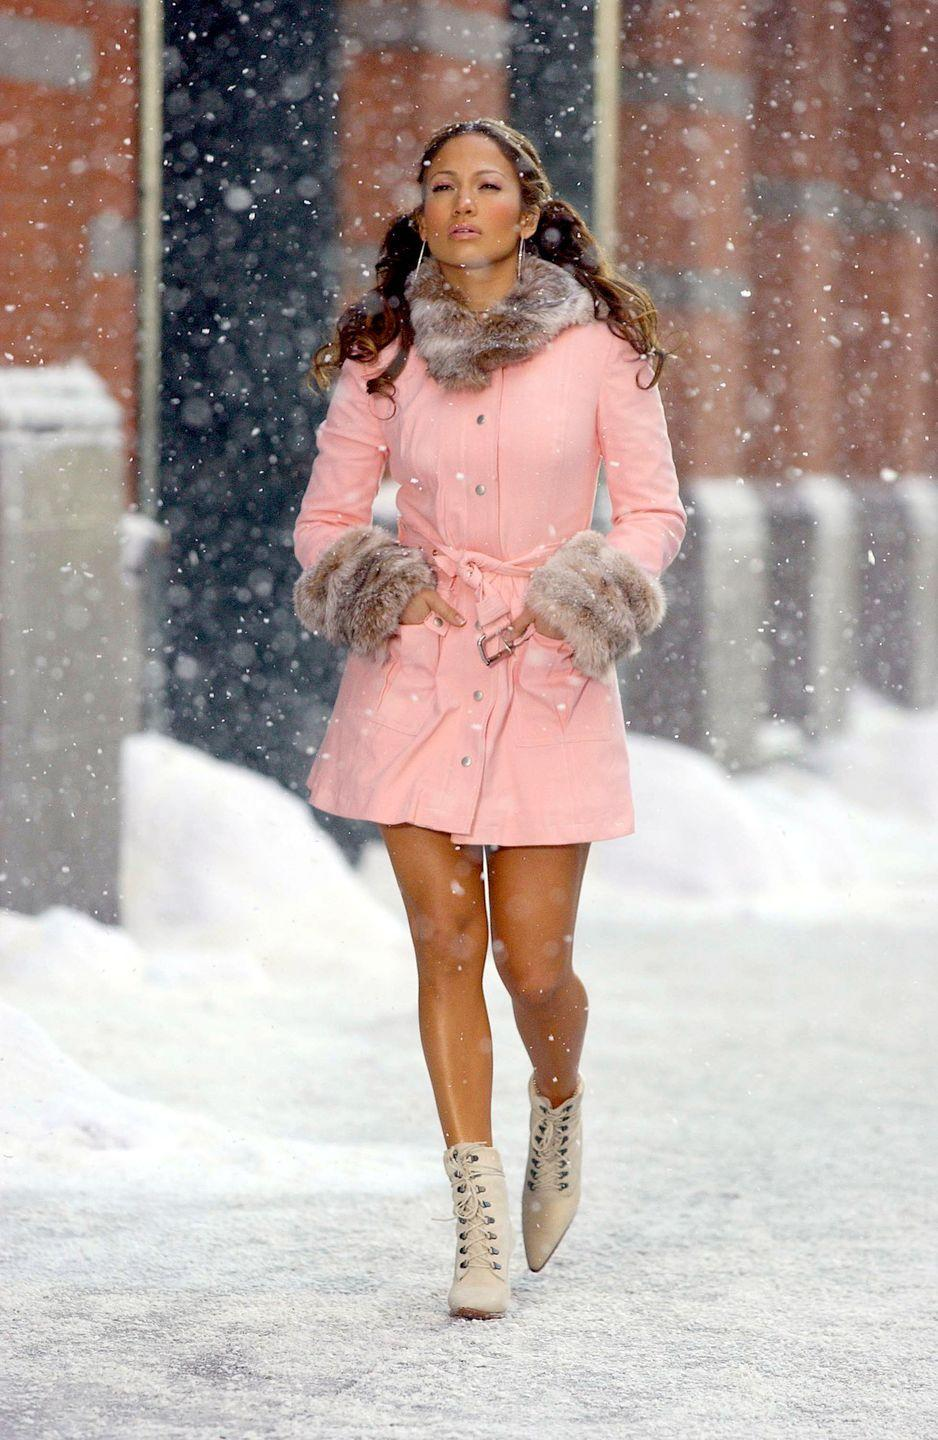 <p>On location in a 3/4 length baby pink coat for the music video filmed in a snowy New York City.</p>